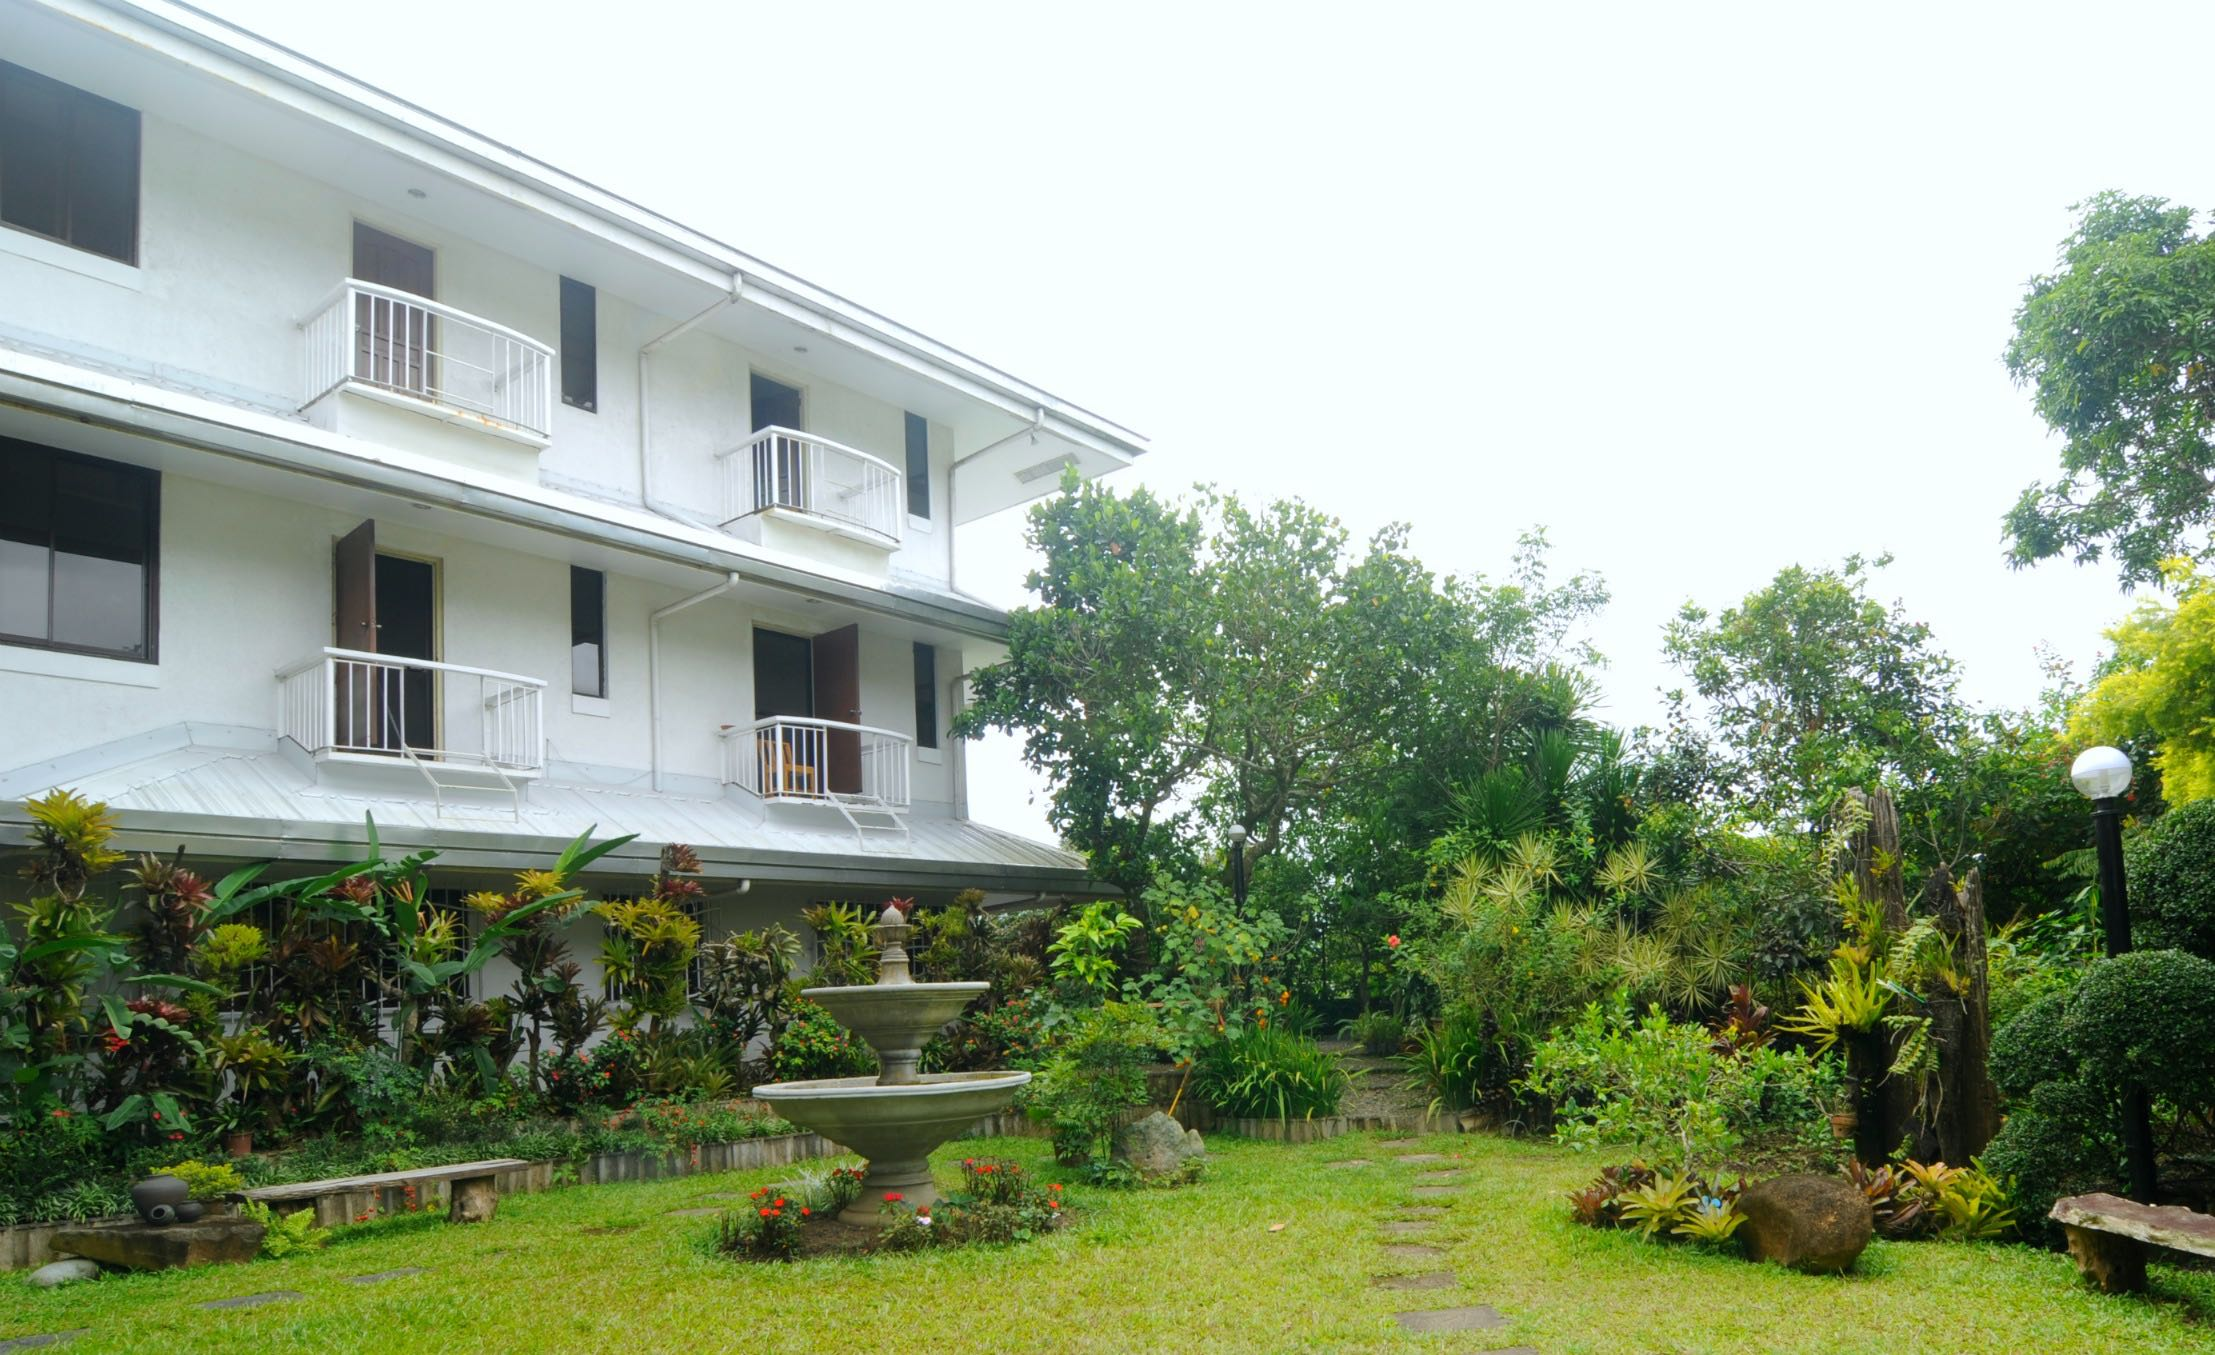 Tagaytay Retreat Center